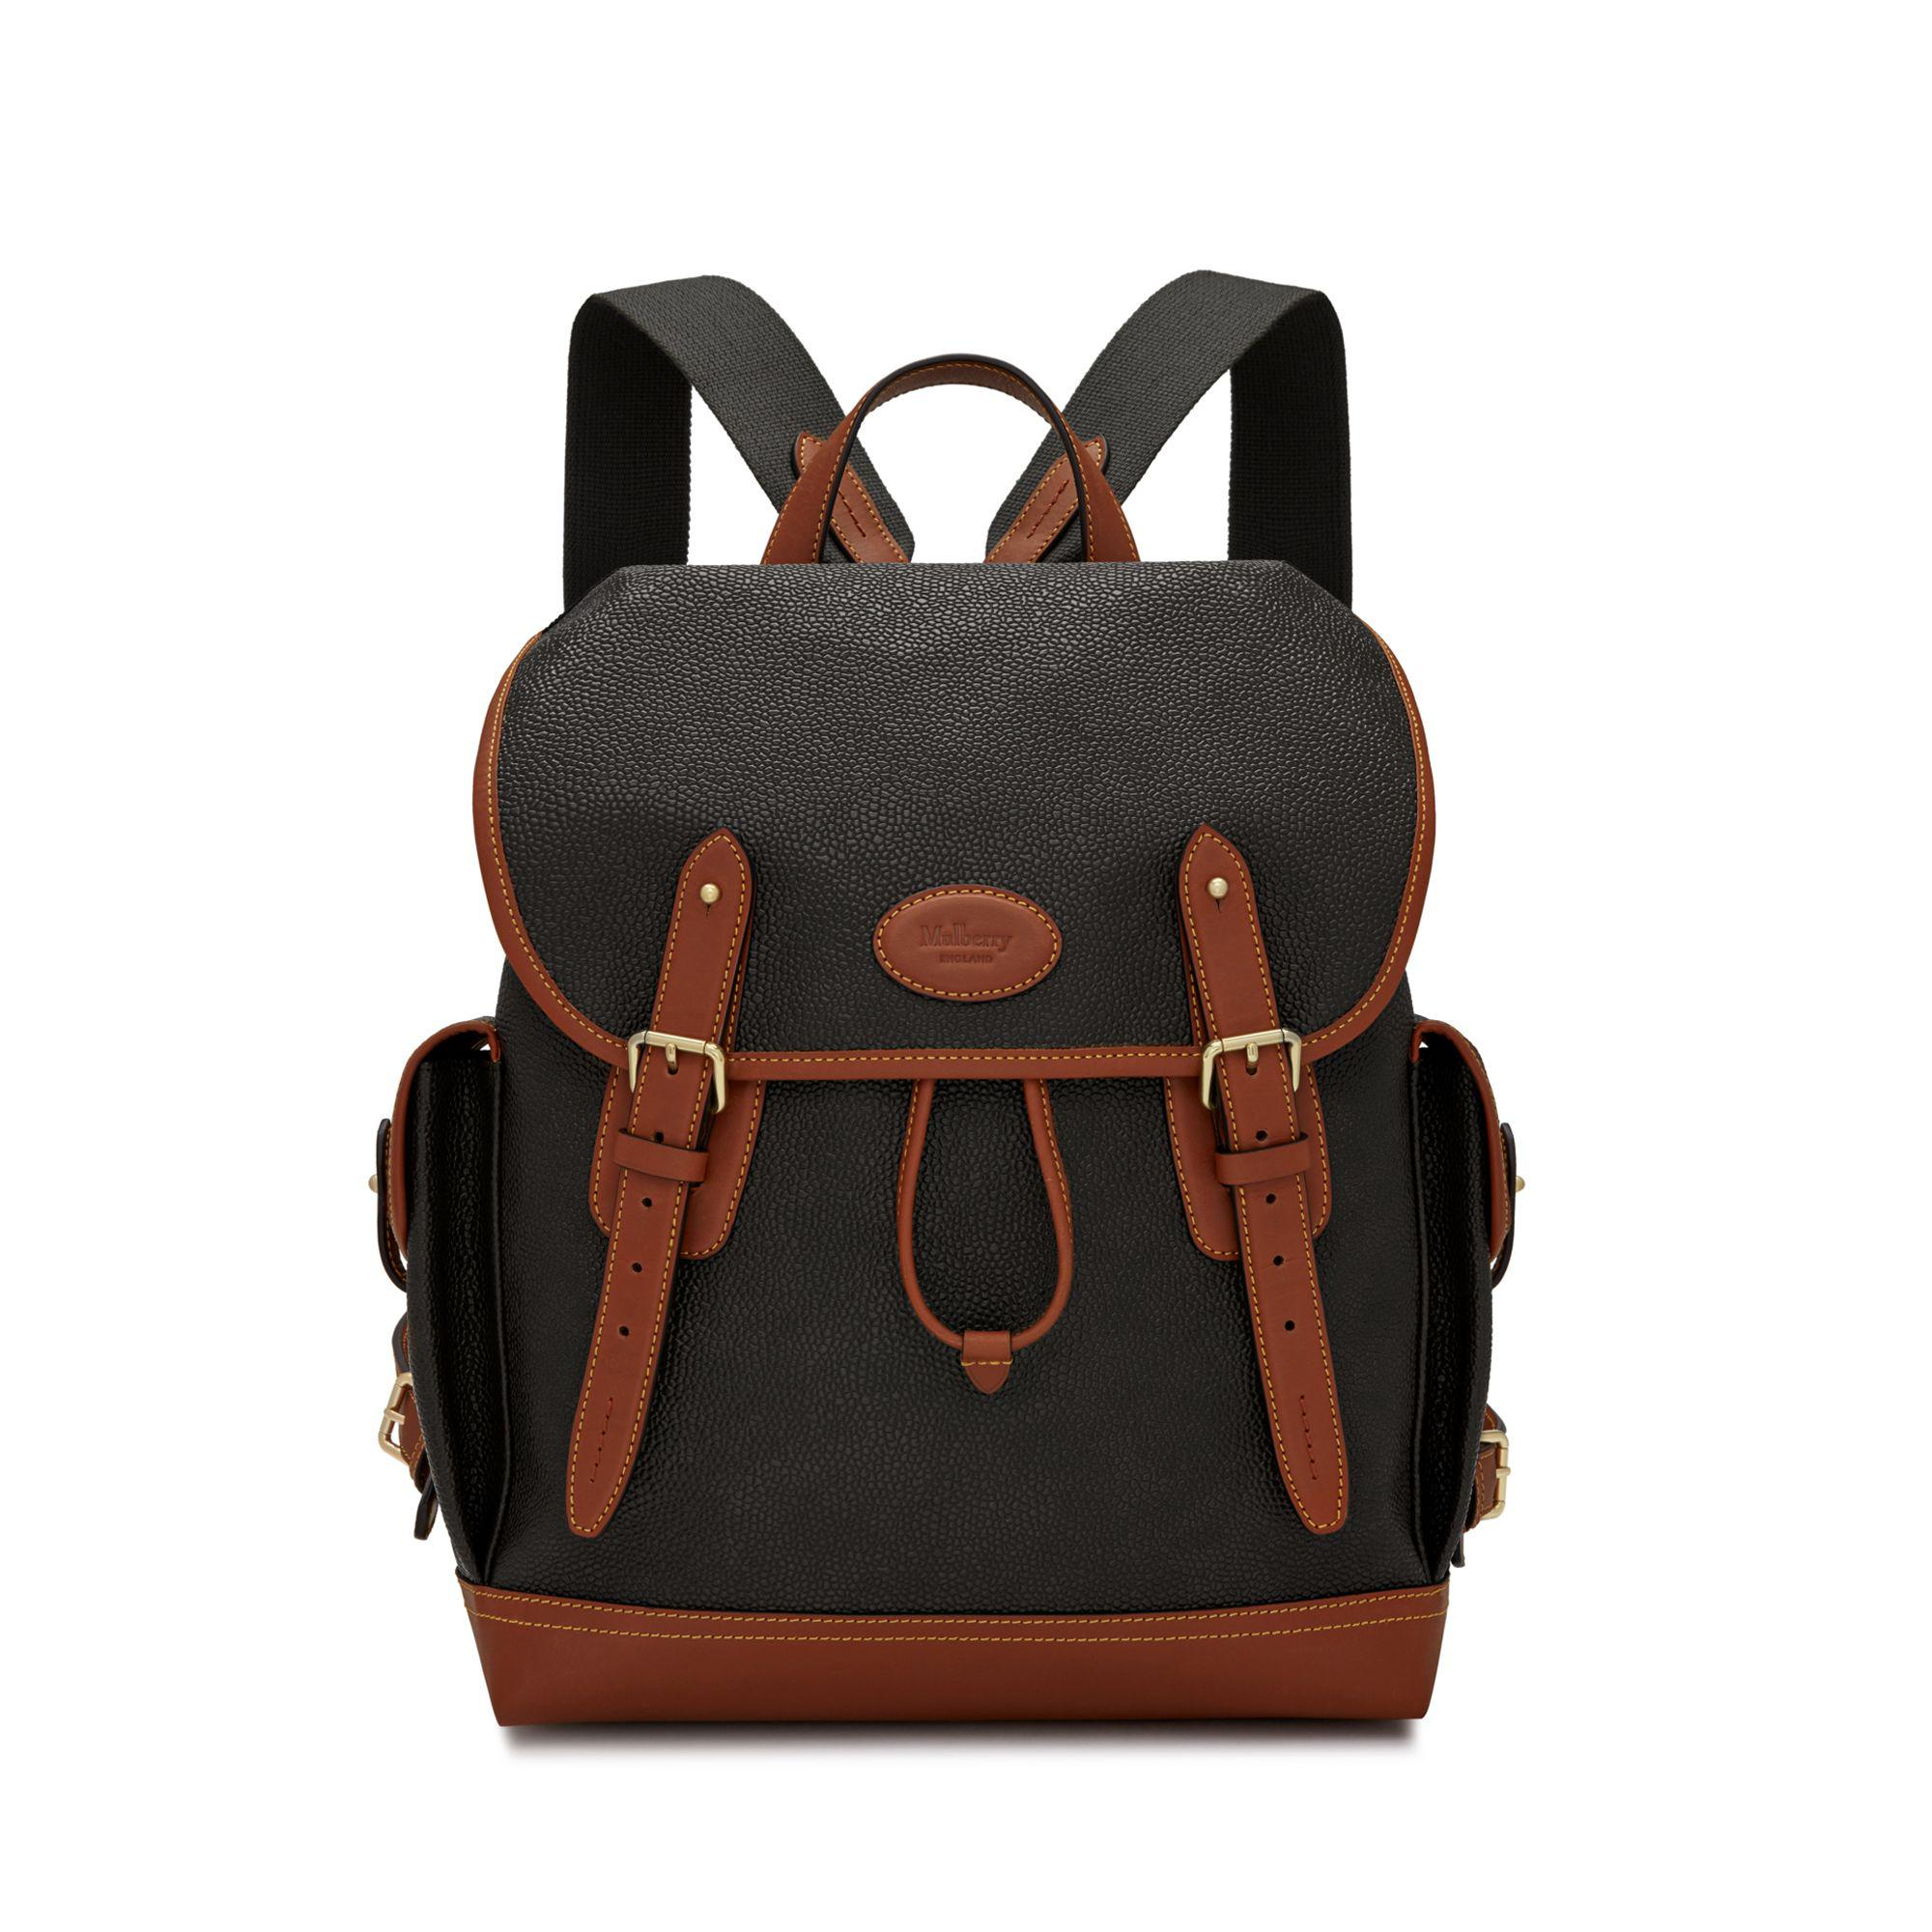 76d27809ed Mulberry Heritage Backpack In Black And Cognac Scotchgrain in Black ...